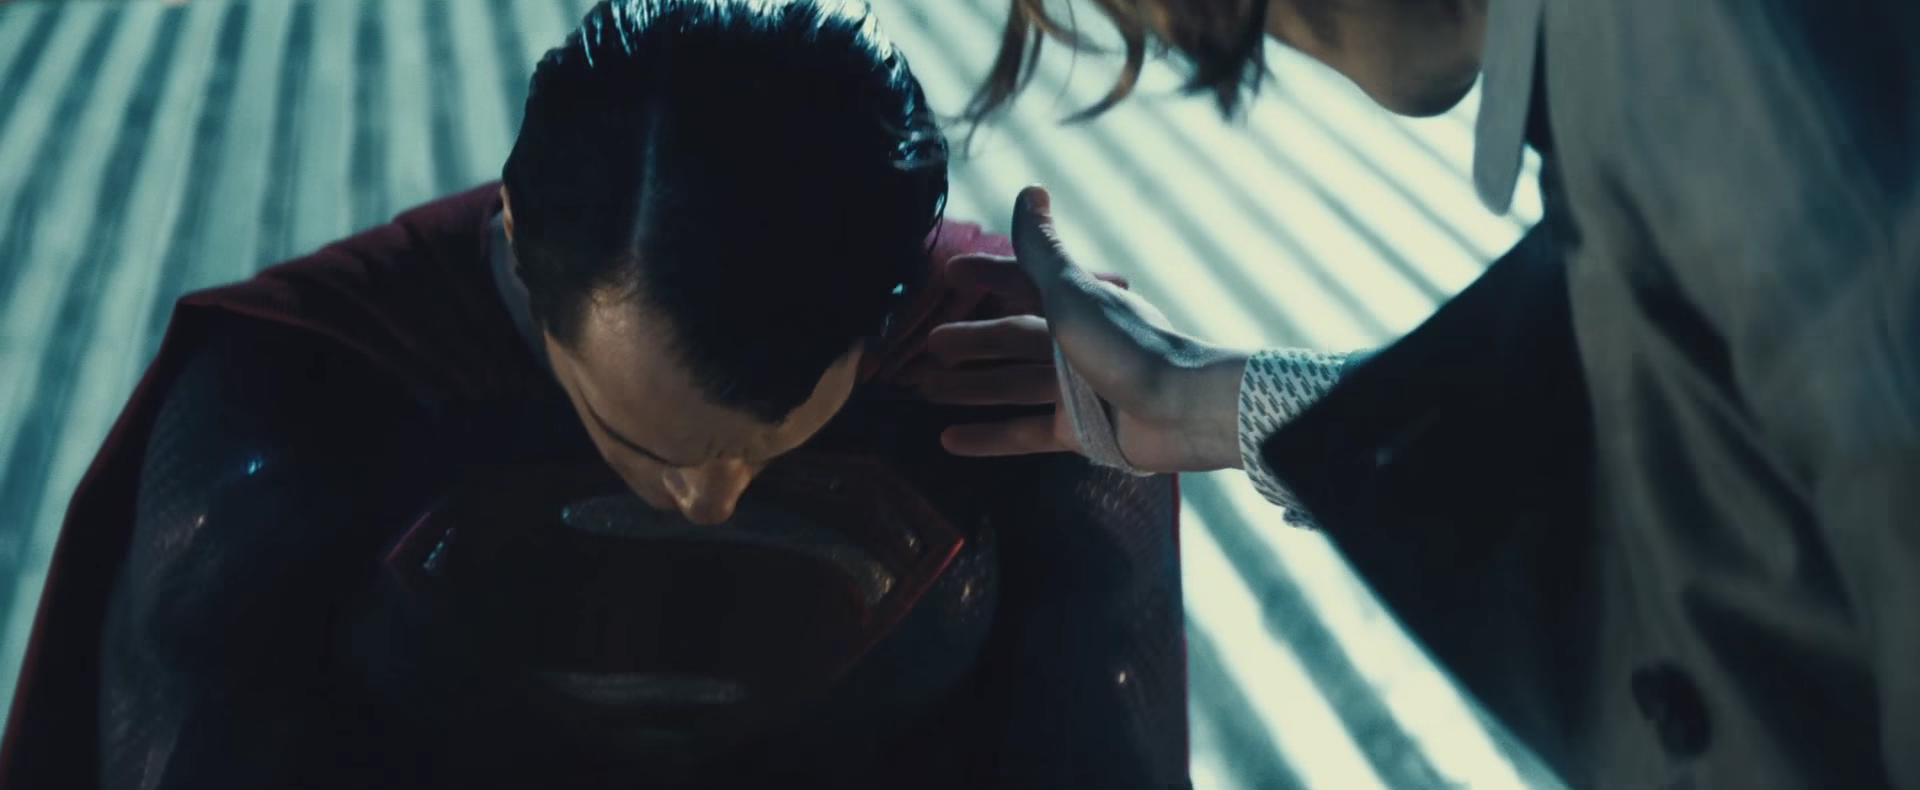 Superman Gives Lex a Super-Stinkface in Another New Batman v Superman Clip